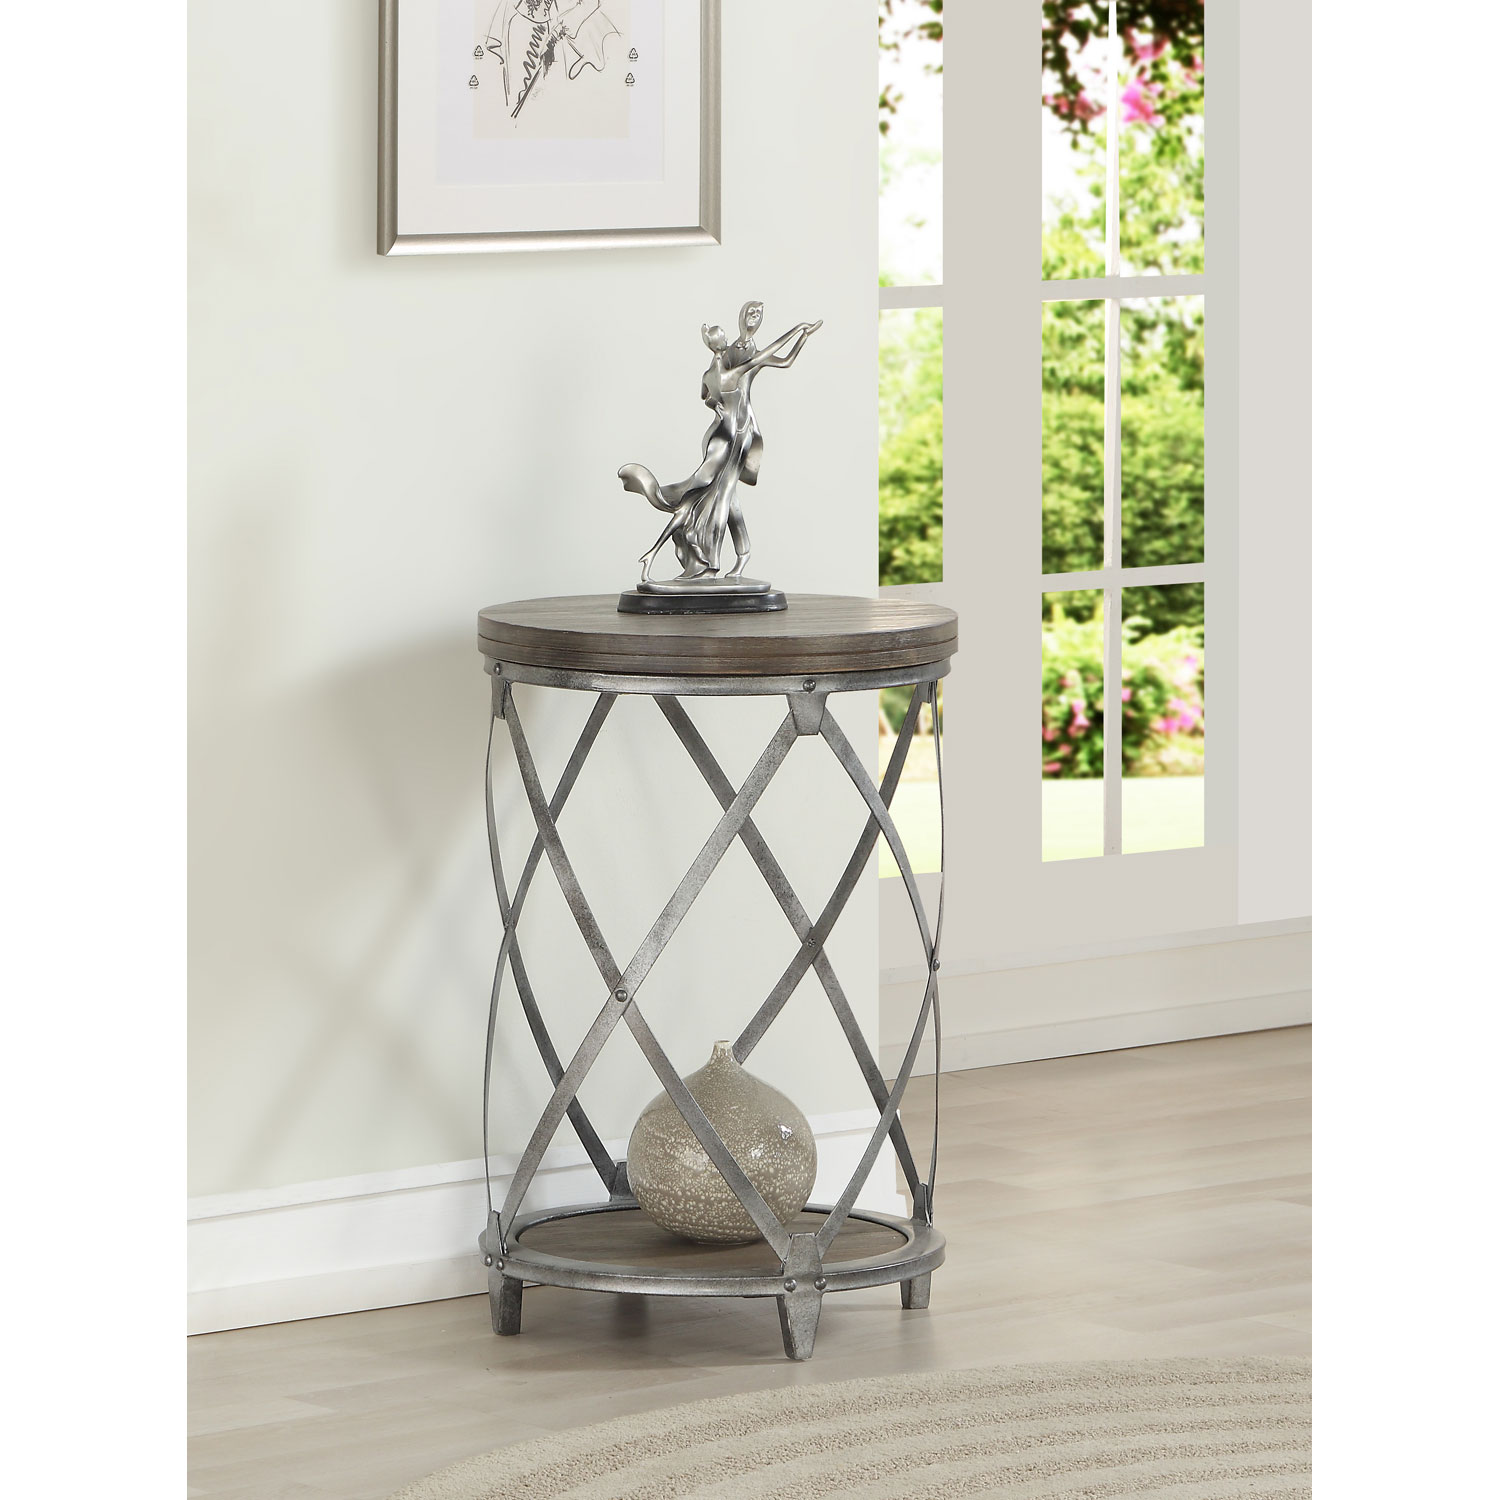 coast imports waverly round accent table gray and brown hover zoom white coffee set tablecloth gold bookshelf lamp kitchen side shades wood console pier one end tables red outdoor